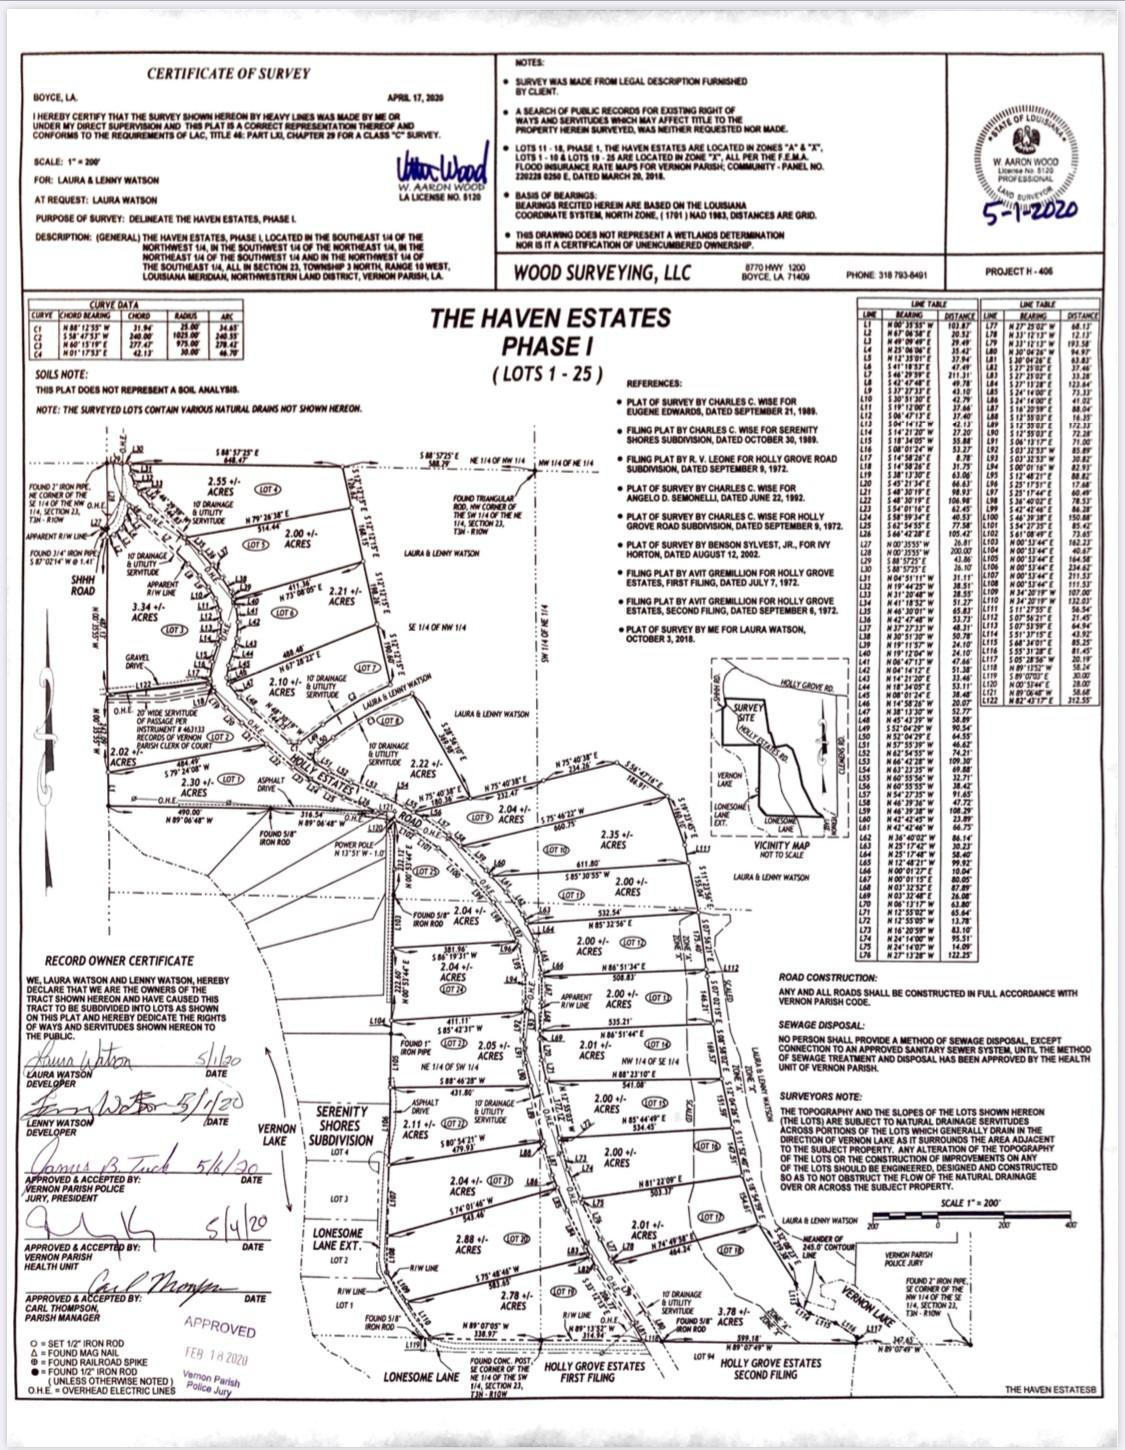 Anacoco land for sale,  Lot 12 Holly Estates Road, Anacoco LA - $38,000